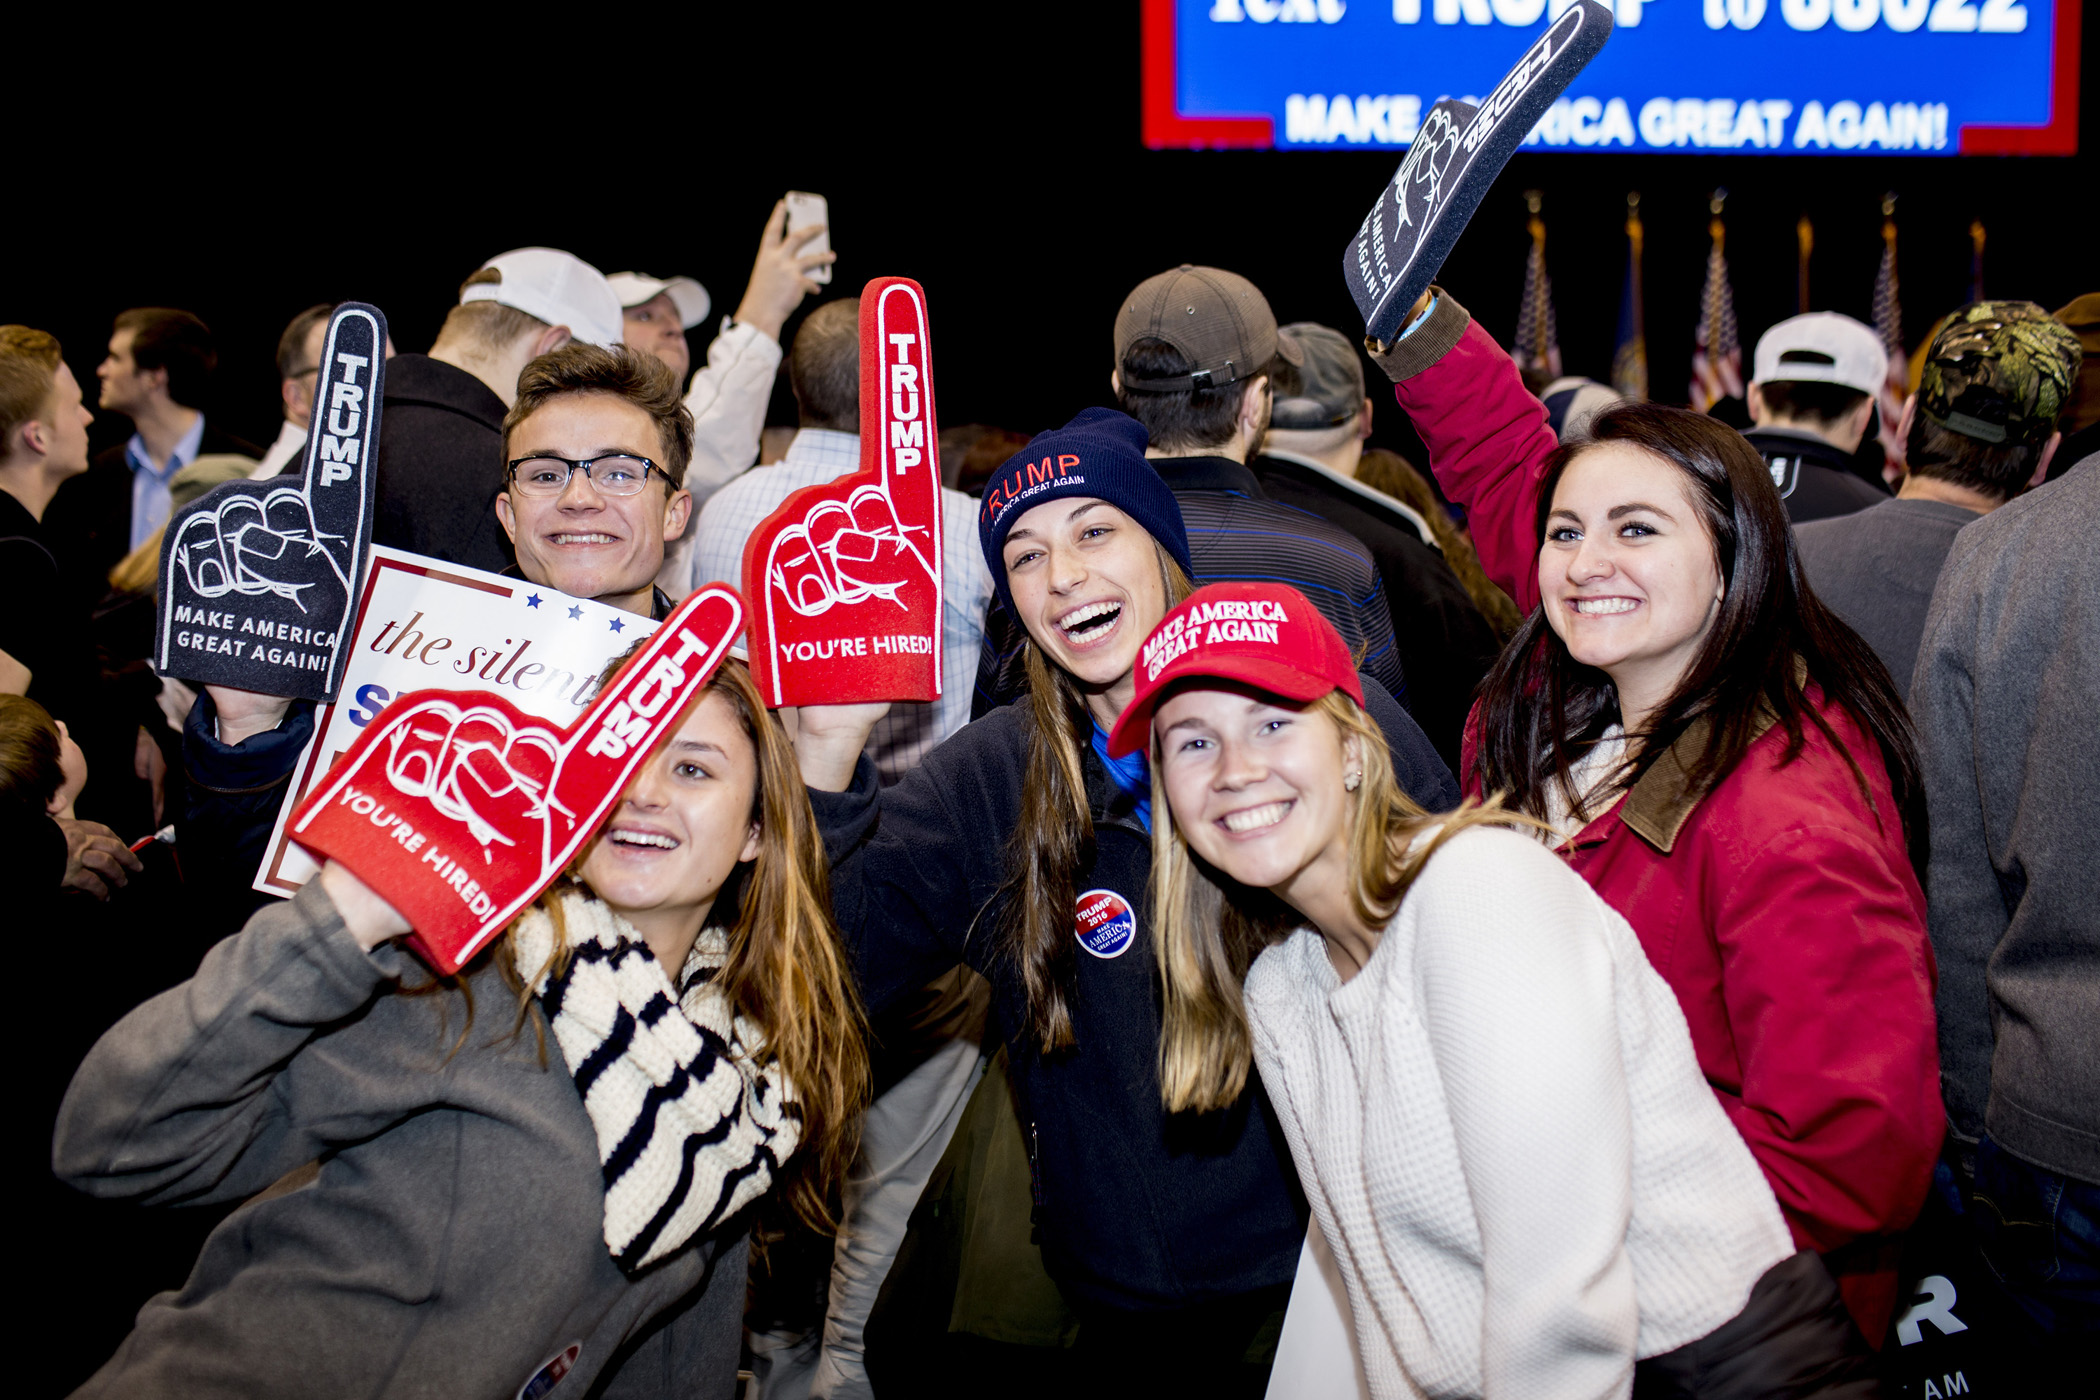 Supporters of Republican presidential candidate Donald Trump attend a rally at the the Verizon Arena on Feb. 9, 2016, in Manchester,  N.H.